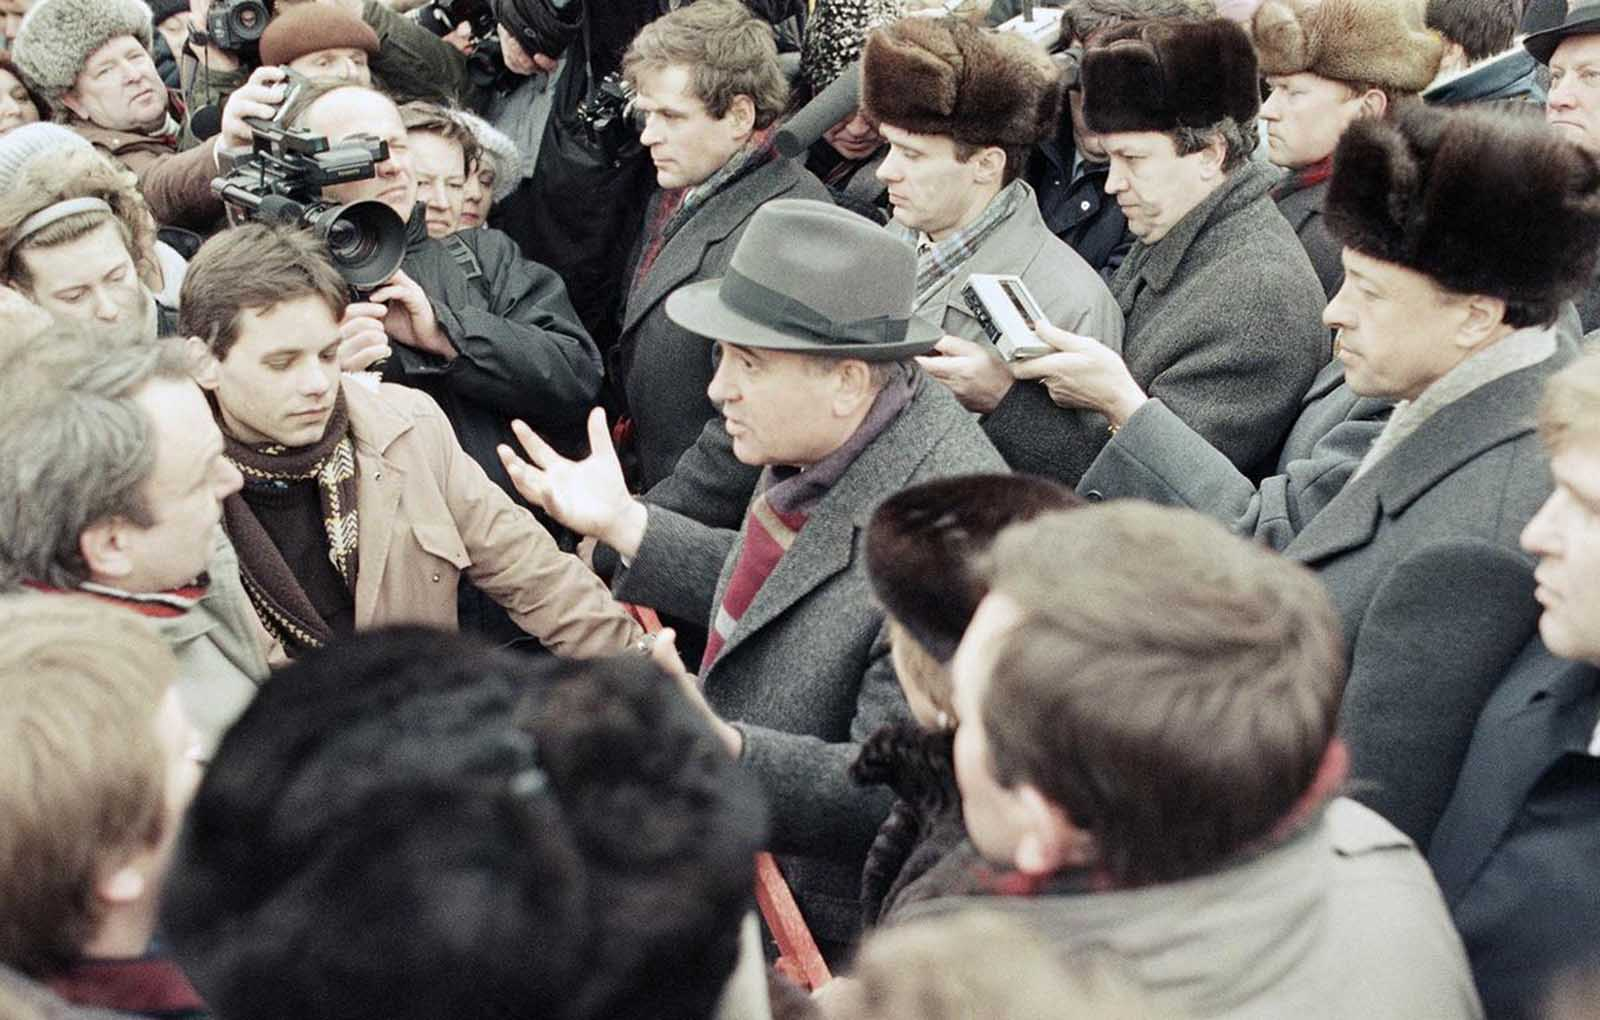 Soviet President Mikhail Gorbachev, center, in animated conversation with residents of Vilnius, Lithuania, on Thursday, January 11, 1990. Gorbachev was in the Lithuanian capital to press for reversal of the local communist party's decision to split from Moscow and to slow the republic's drive for complete independence.